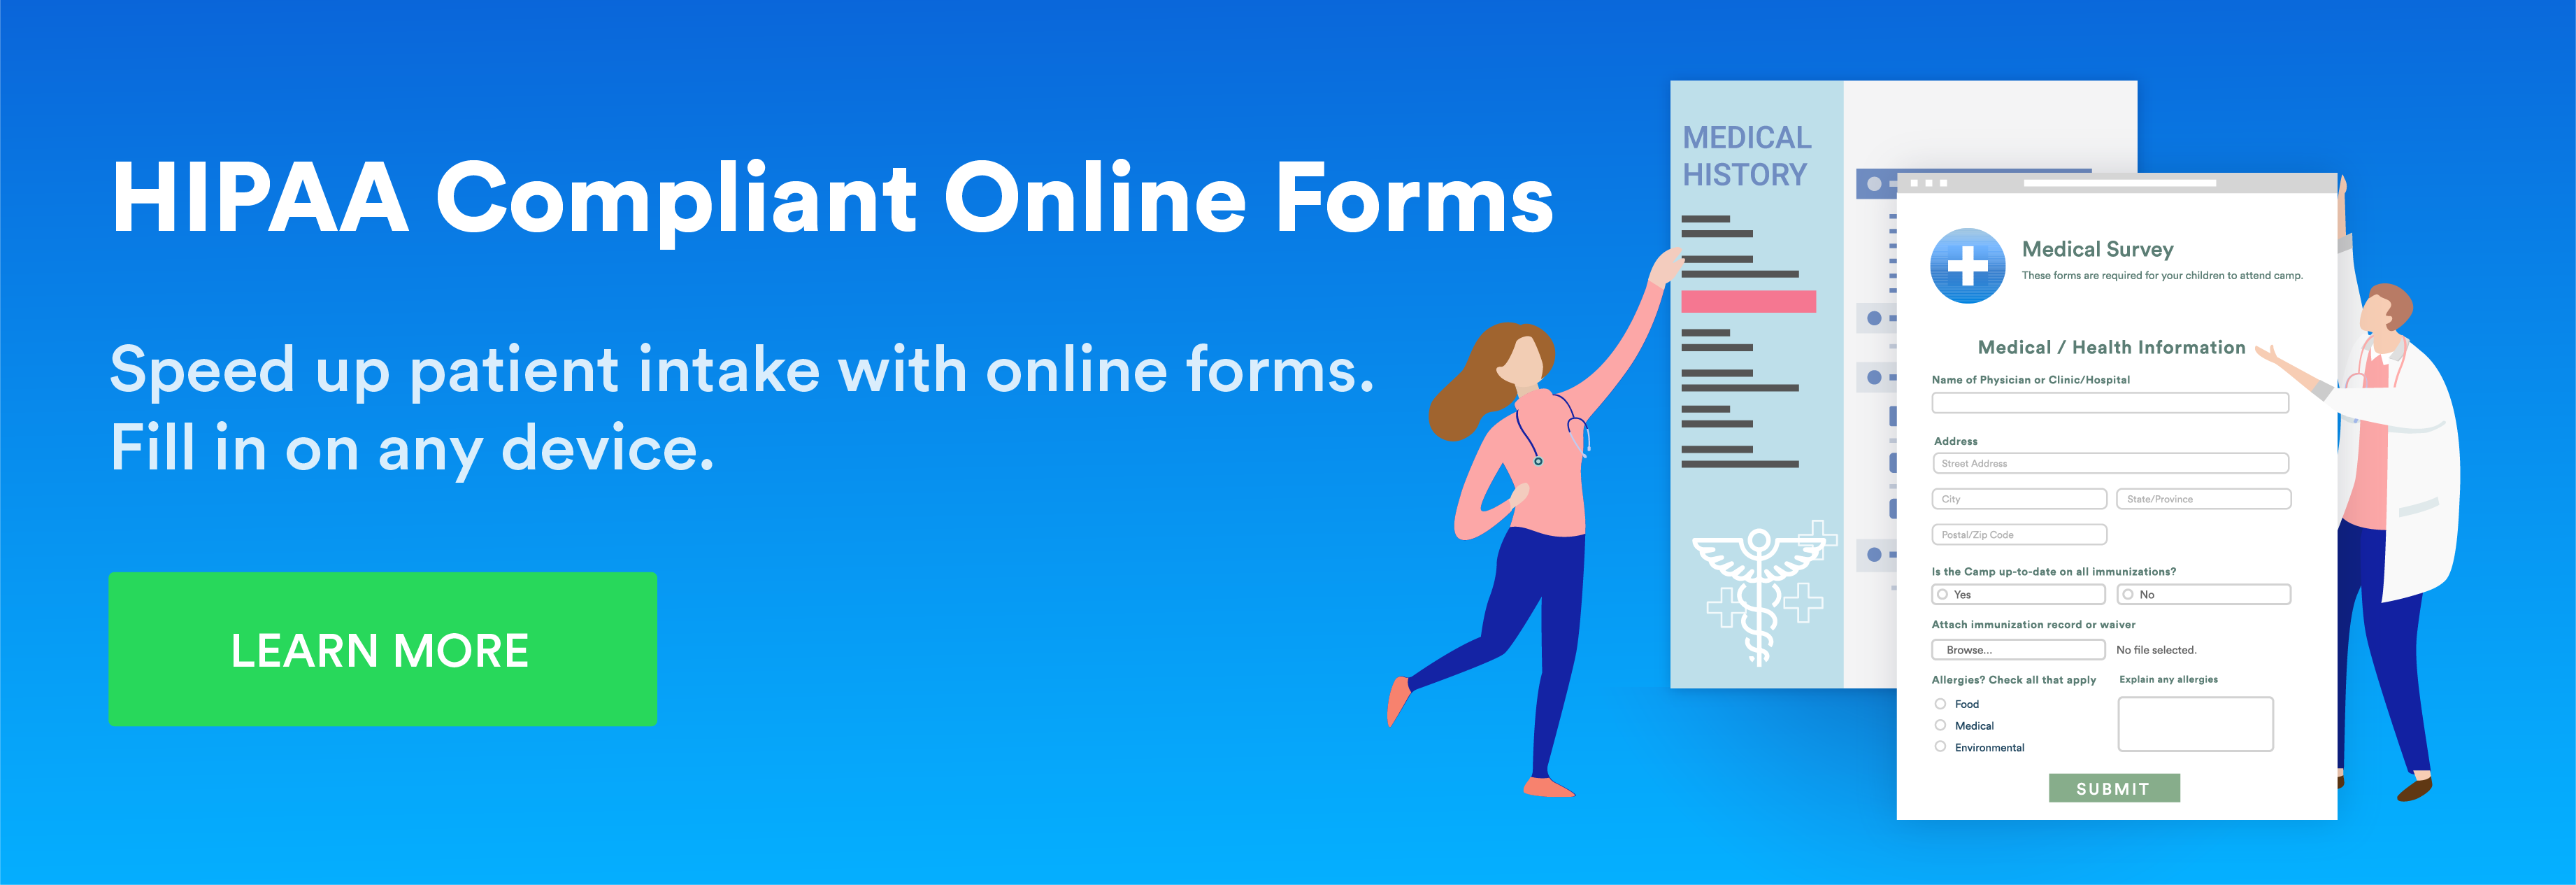 Speed up patient intake with online forms. Fill in on any device.